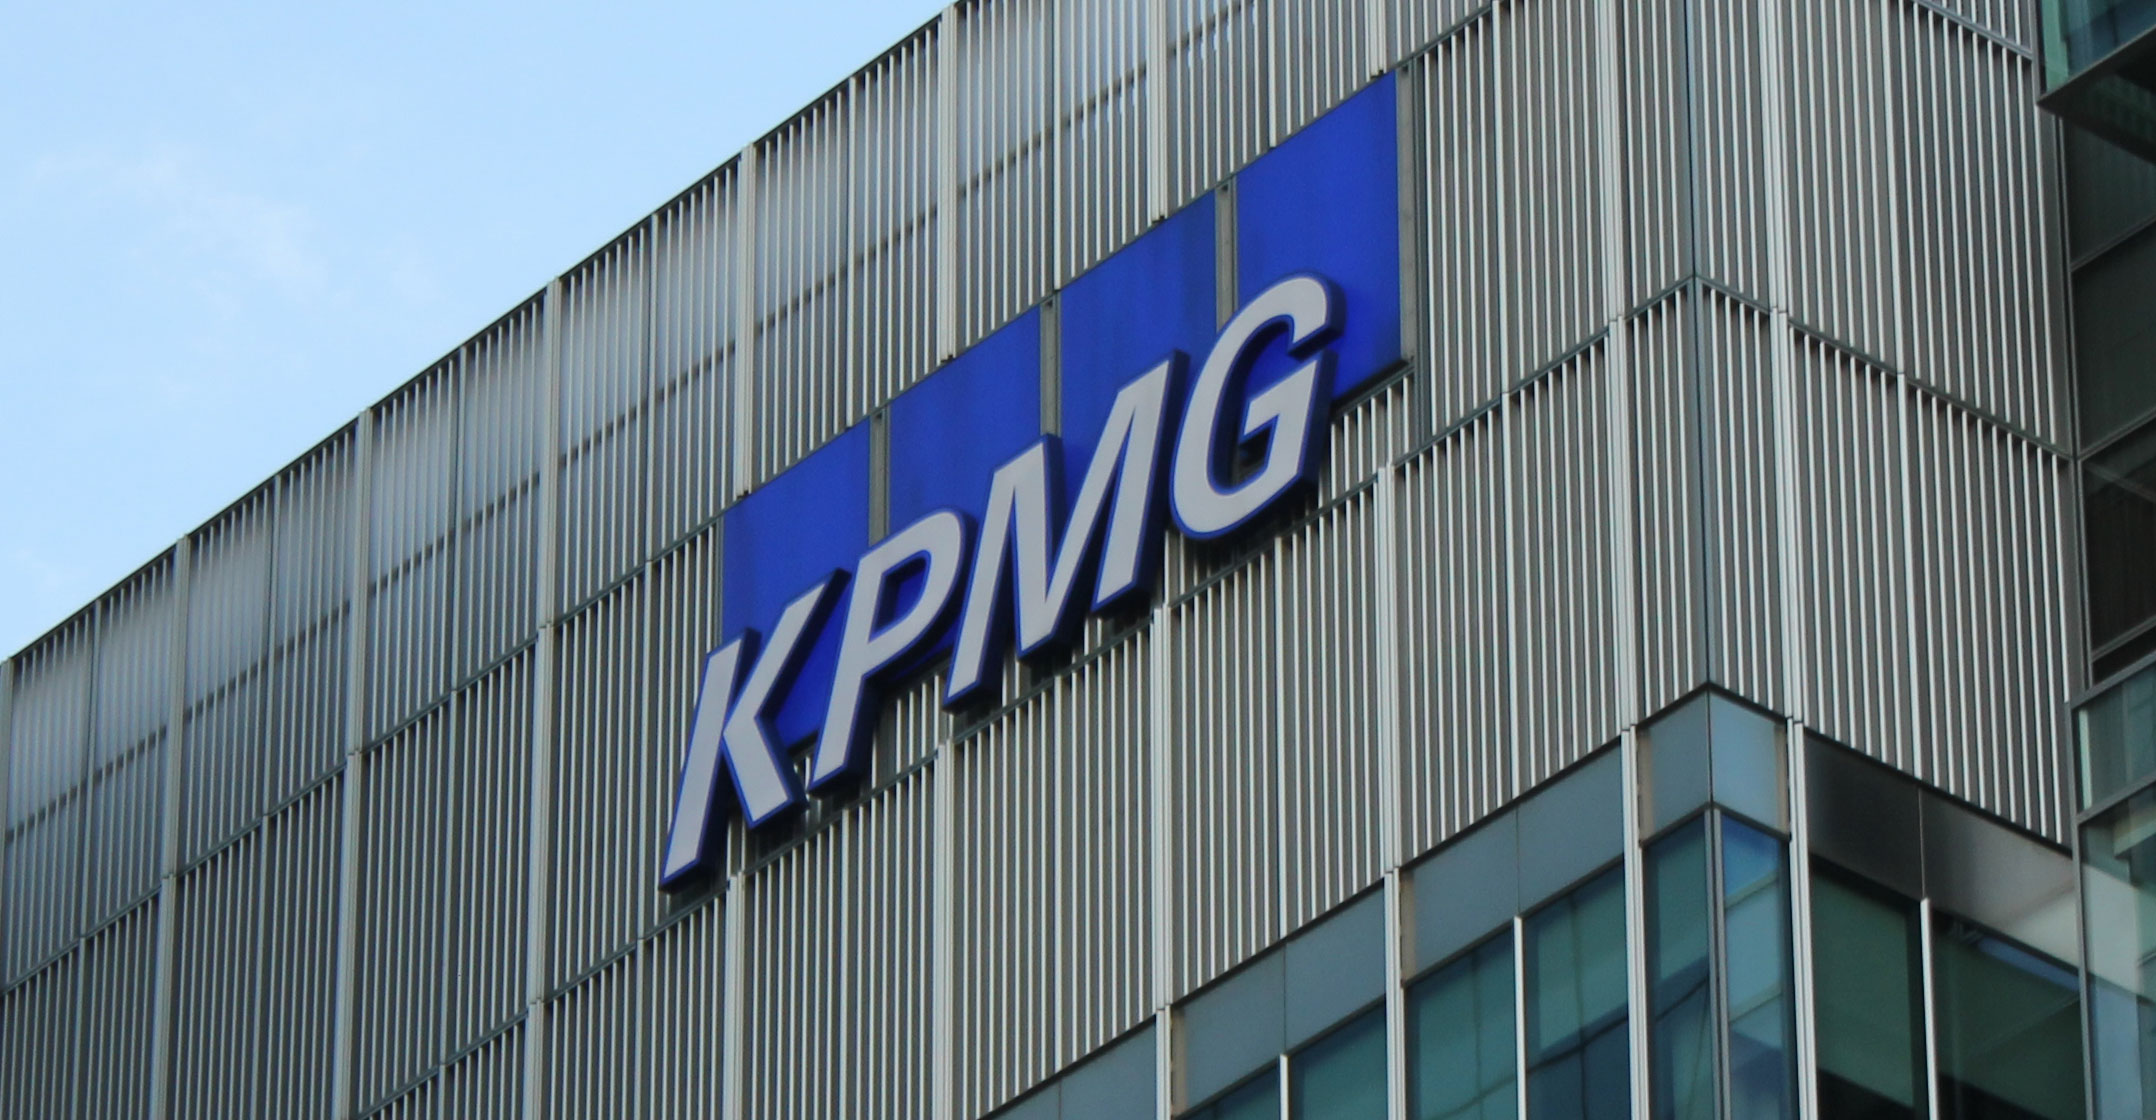 KPMG South Africa's leadership resigns over Gupta scandal